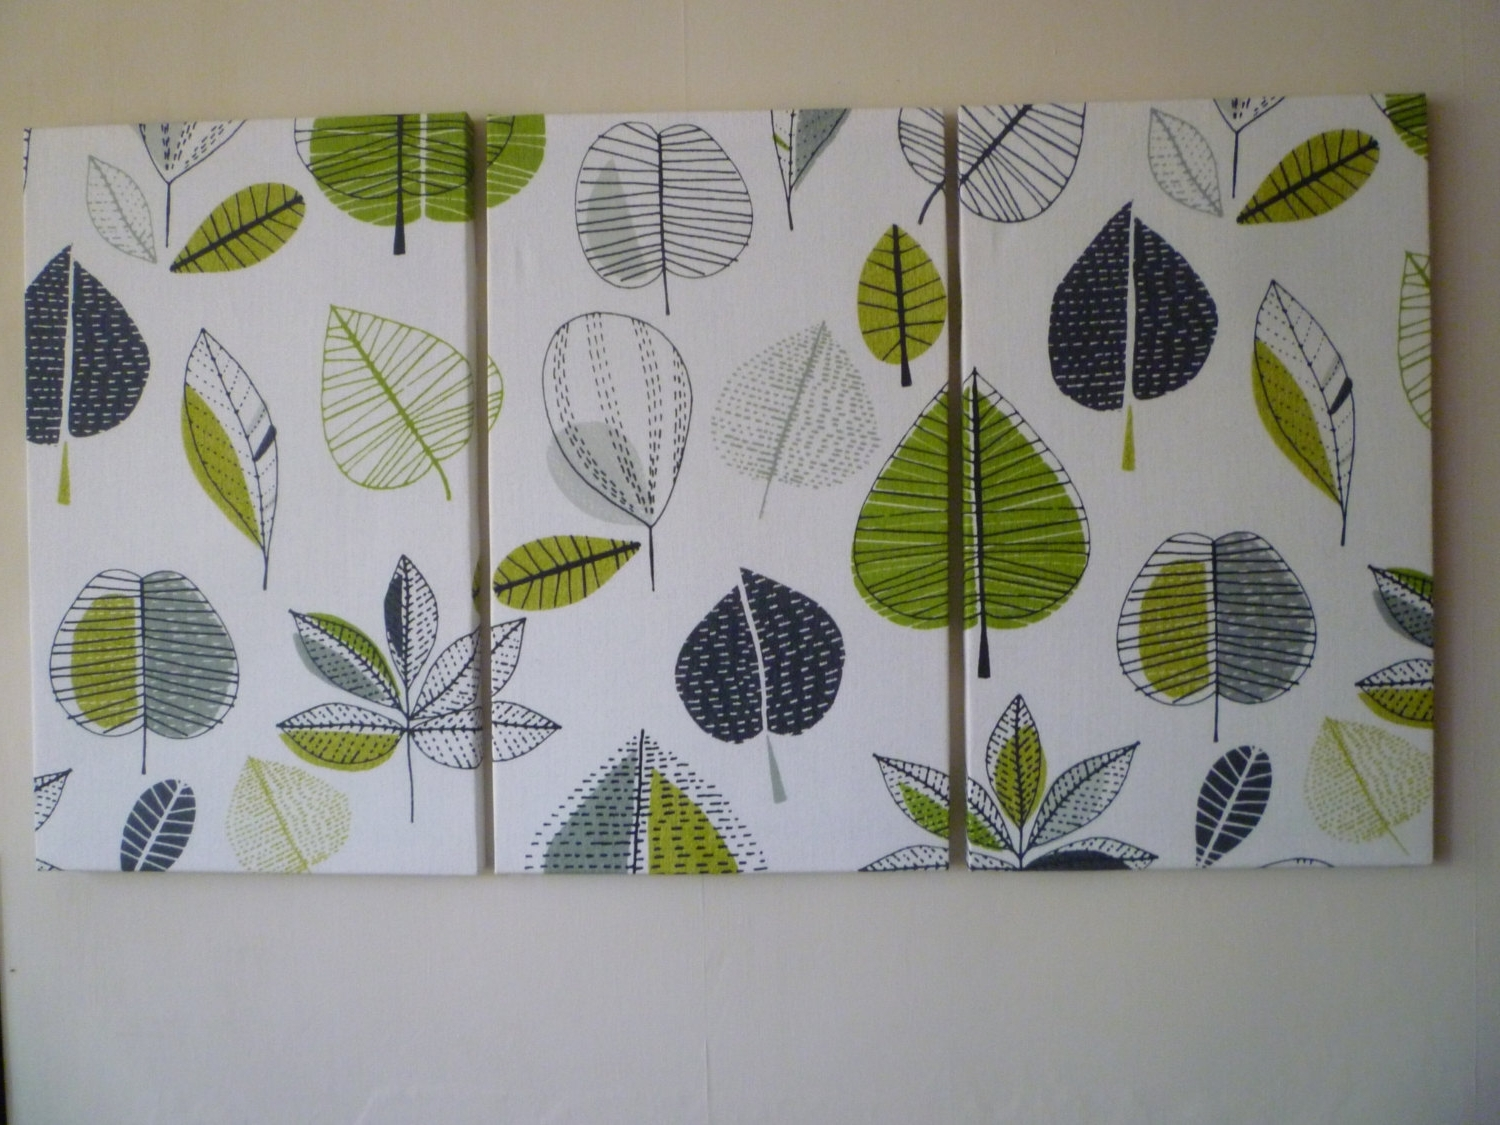 Newest Wall Art Designs: Fabric Wall Art Big Lime Green Fabric Wall Art With Regard To Canvas And Fabric Wall Art (View 3 of 15)